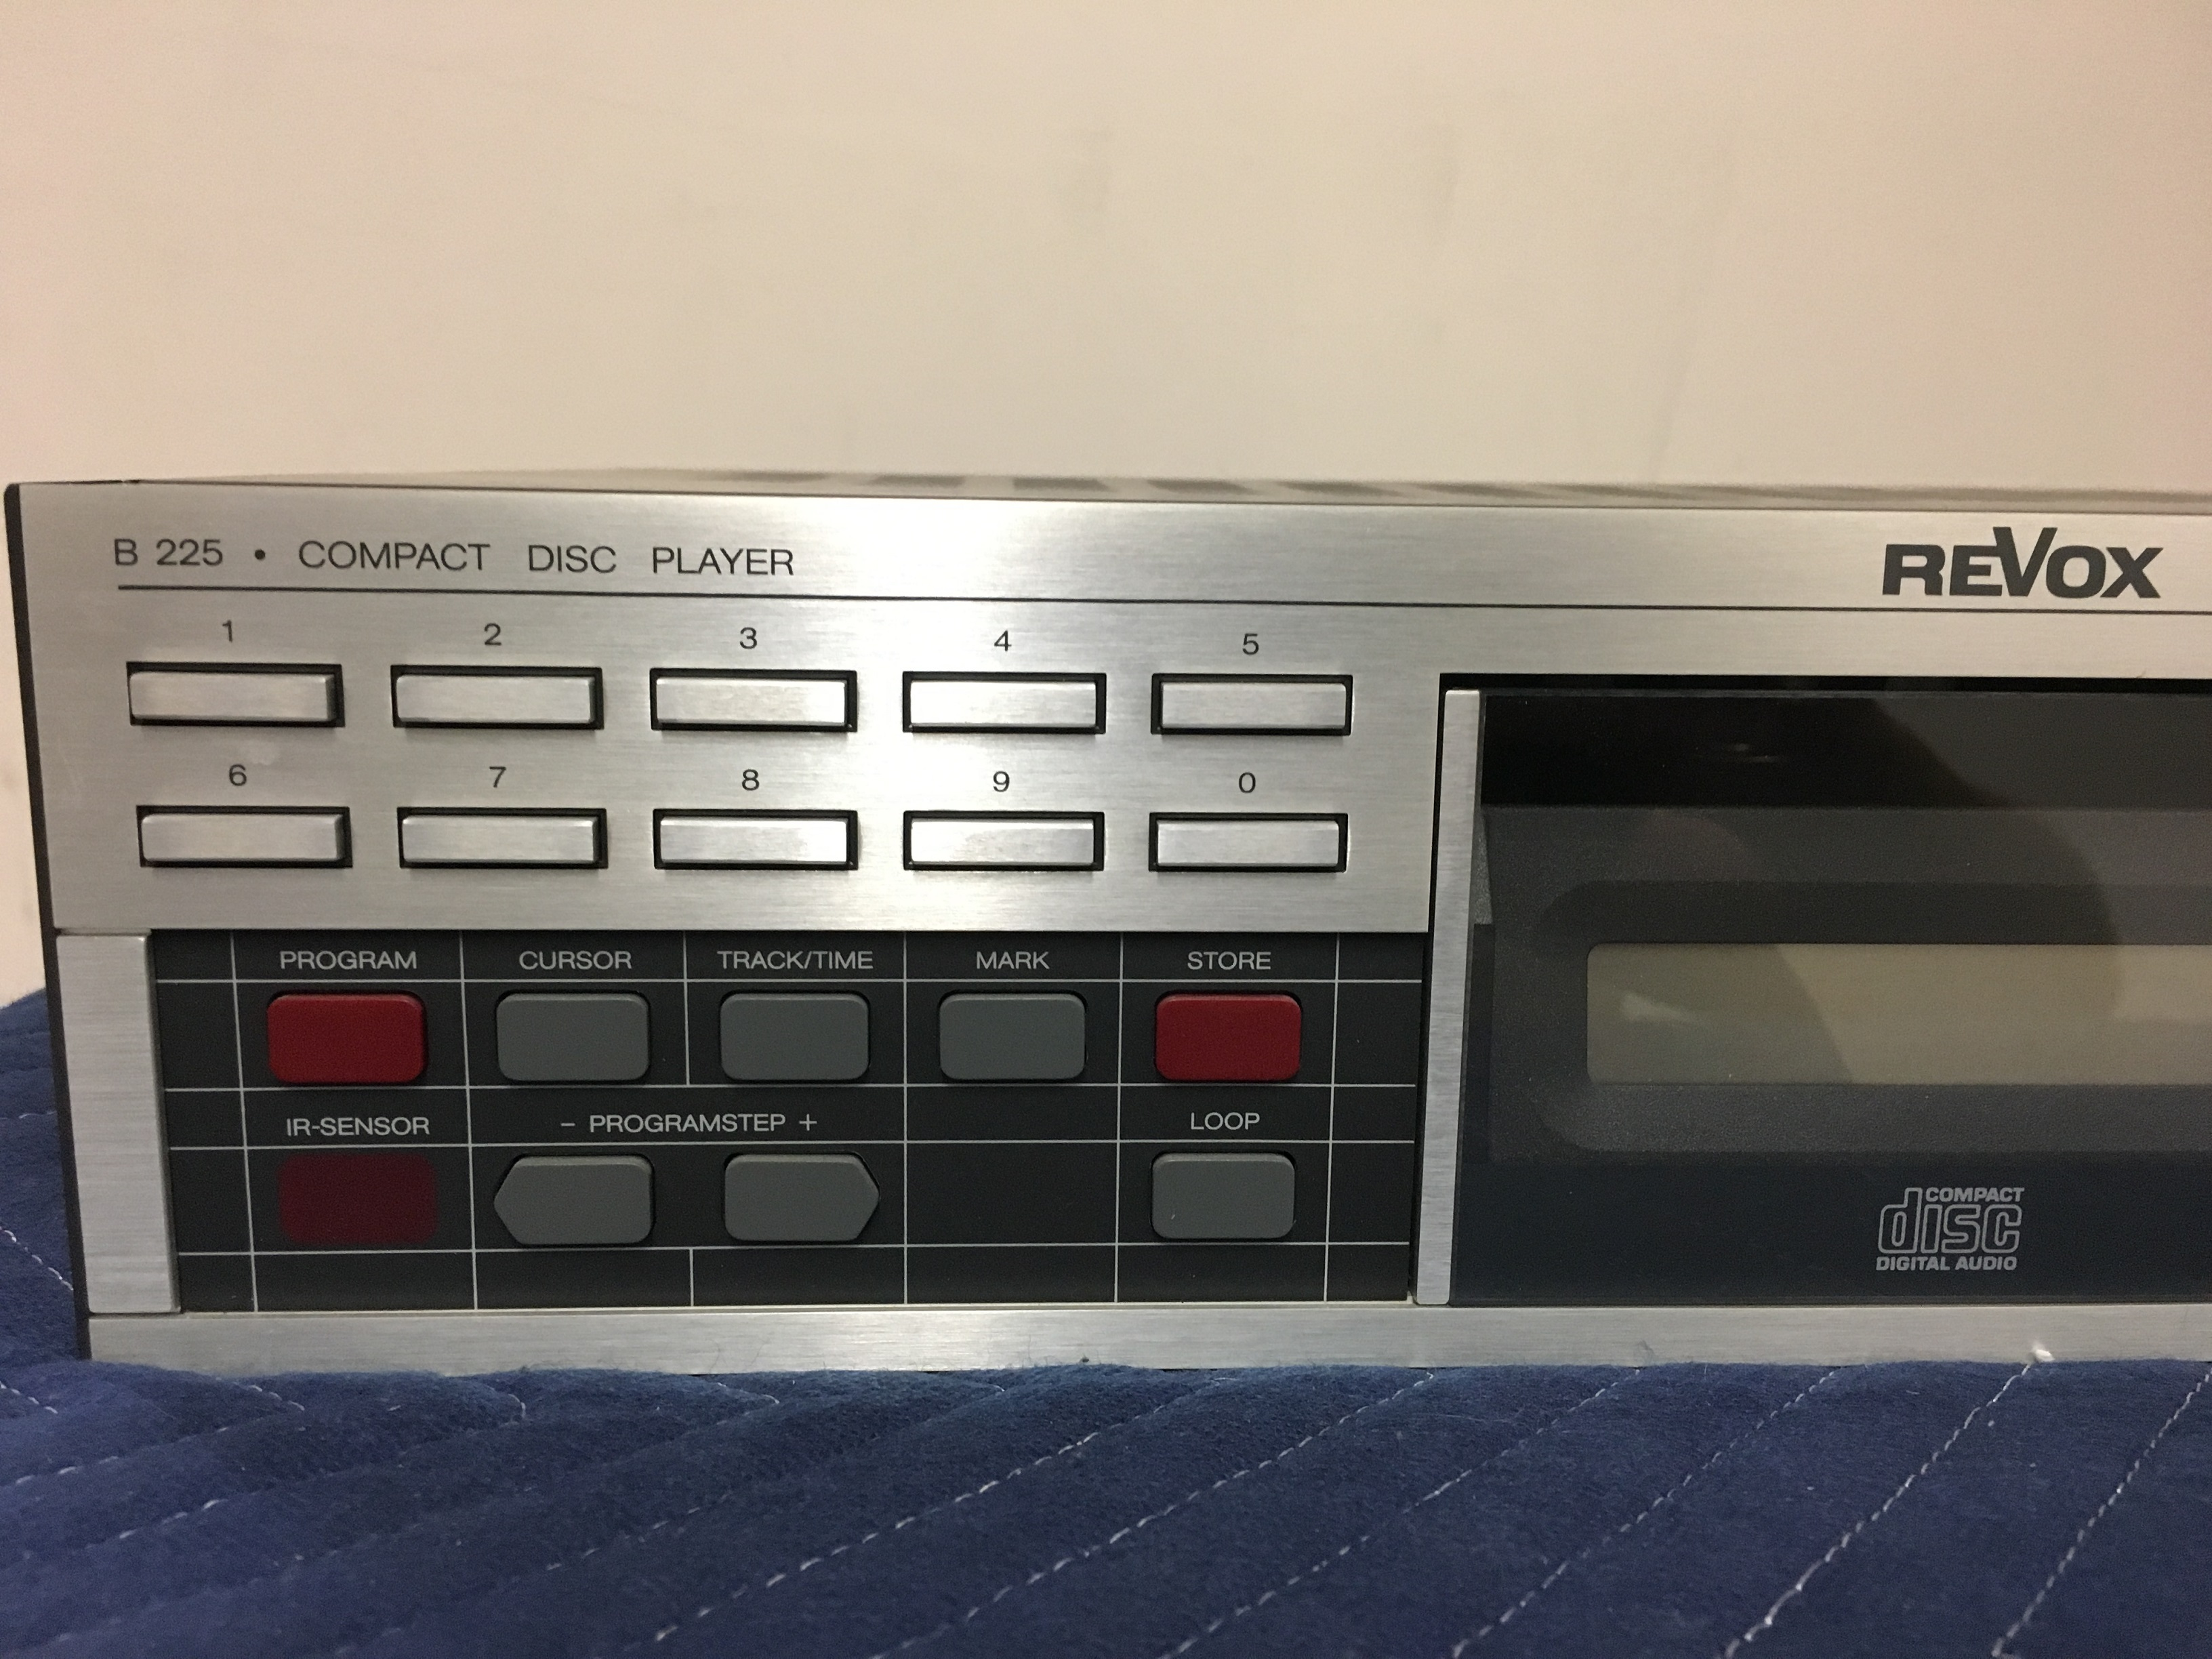 ReVox B225 compact disc player